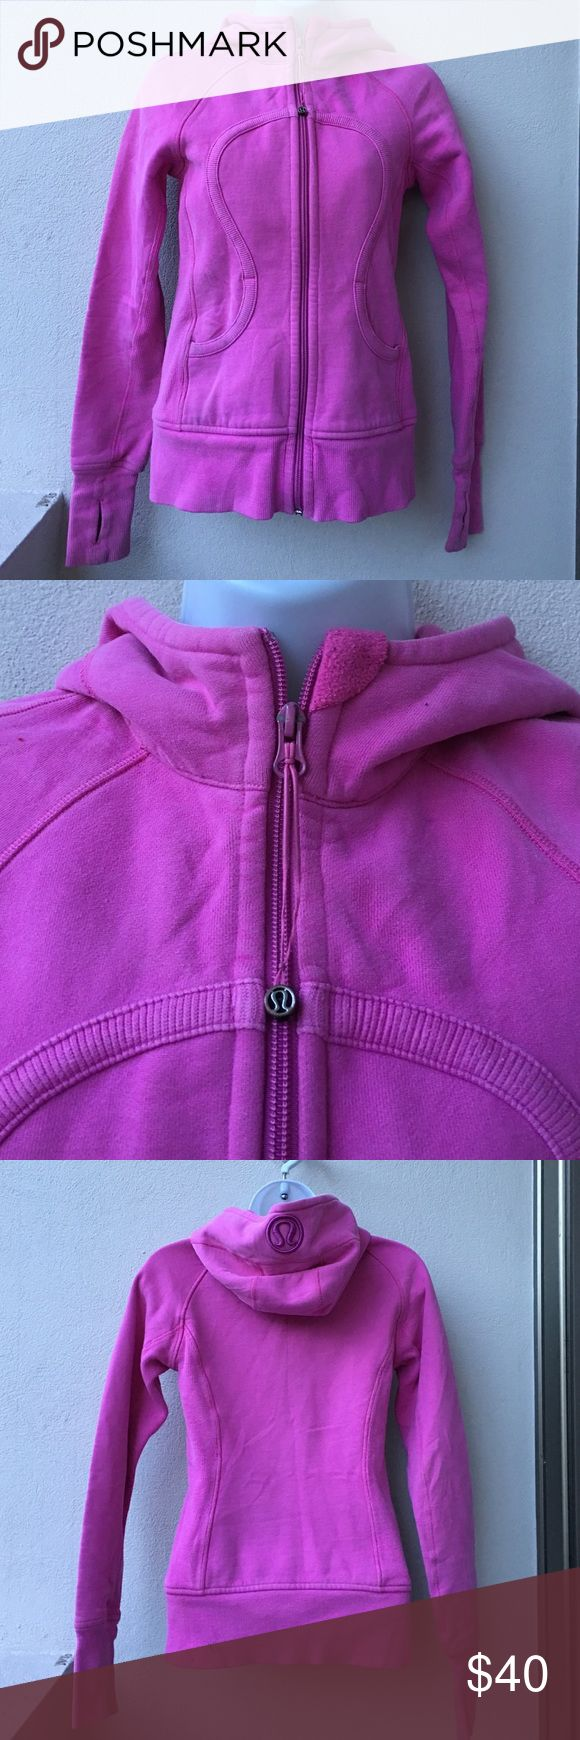 Lululemon Scuba Hoodie Pink size 4 Preowned Authentic Lululemon Scuba Hoodie Pink size 4. Signs of wear. Has thumbholes. Please look at pictures for better reference. Happy shopping!! lululemon athletica Tops Sweatshirts & Hoodies